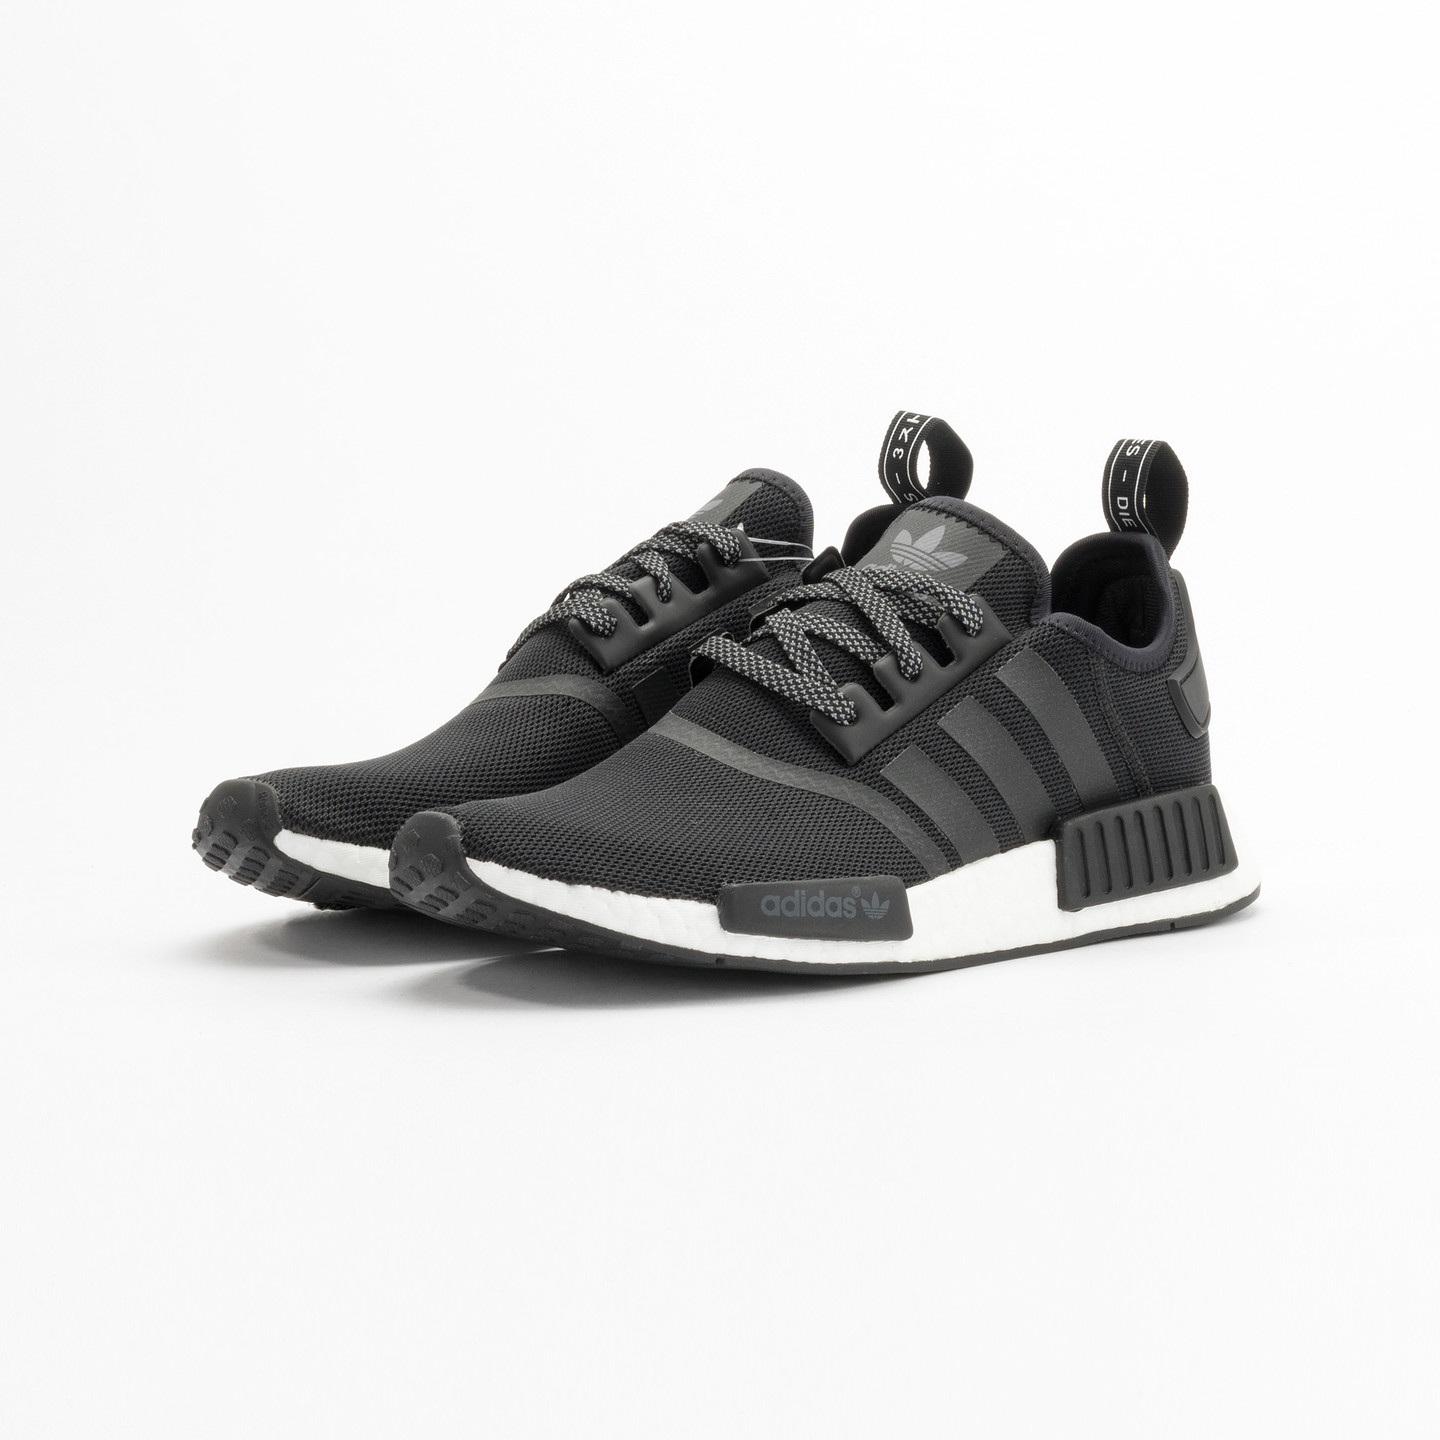 Adidas NMD R1 Runner Core Black Reflective / Ftwr White S31505-42